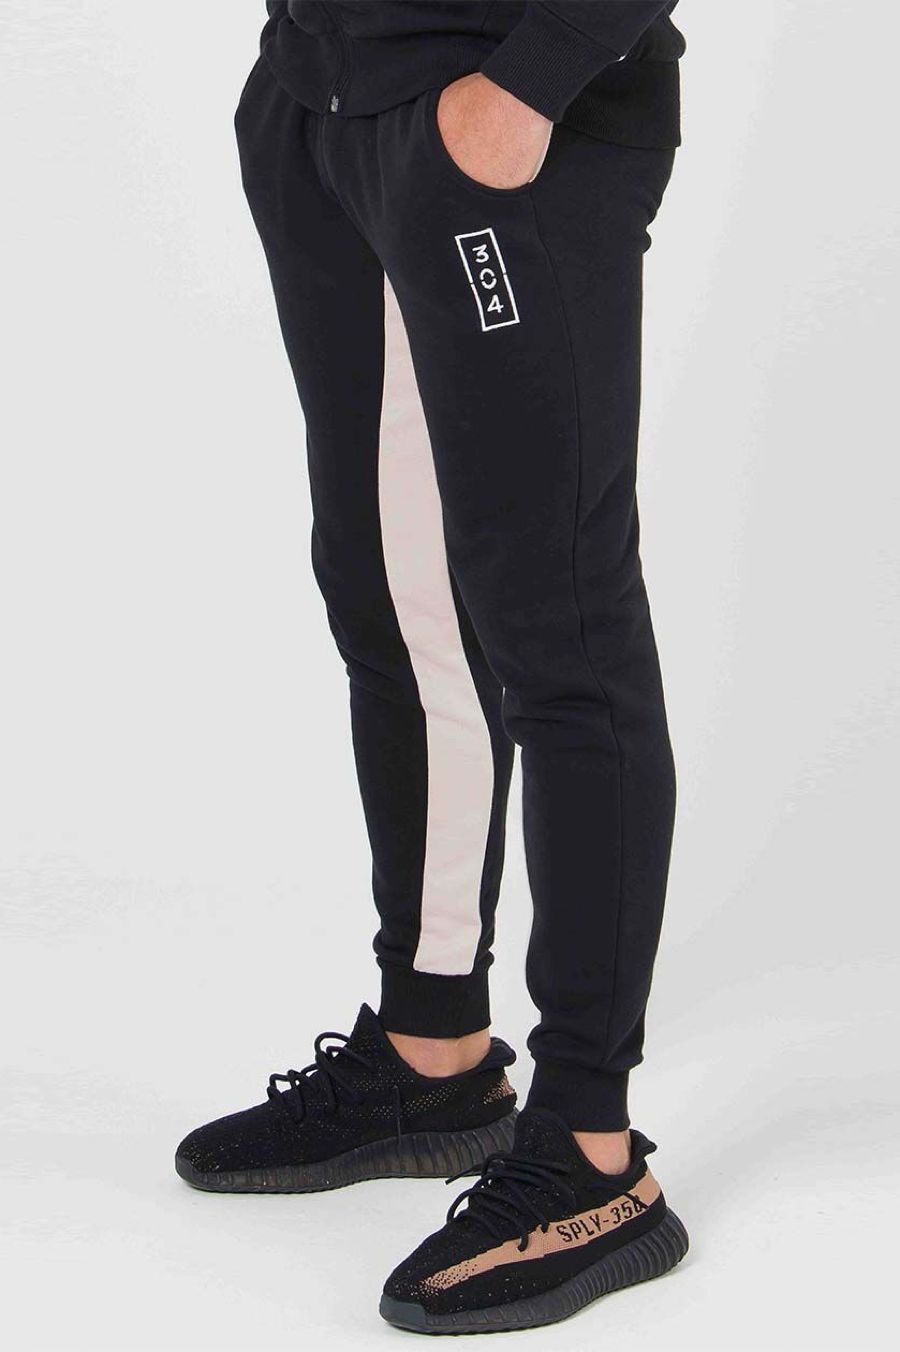 304 Clothing RJ Joggers - Black - 4